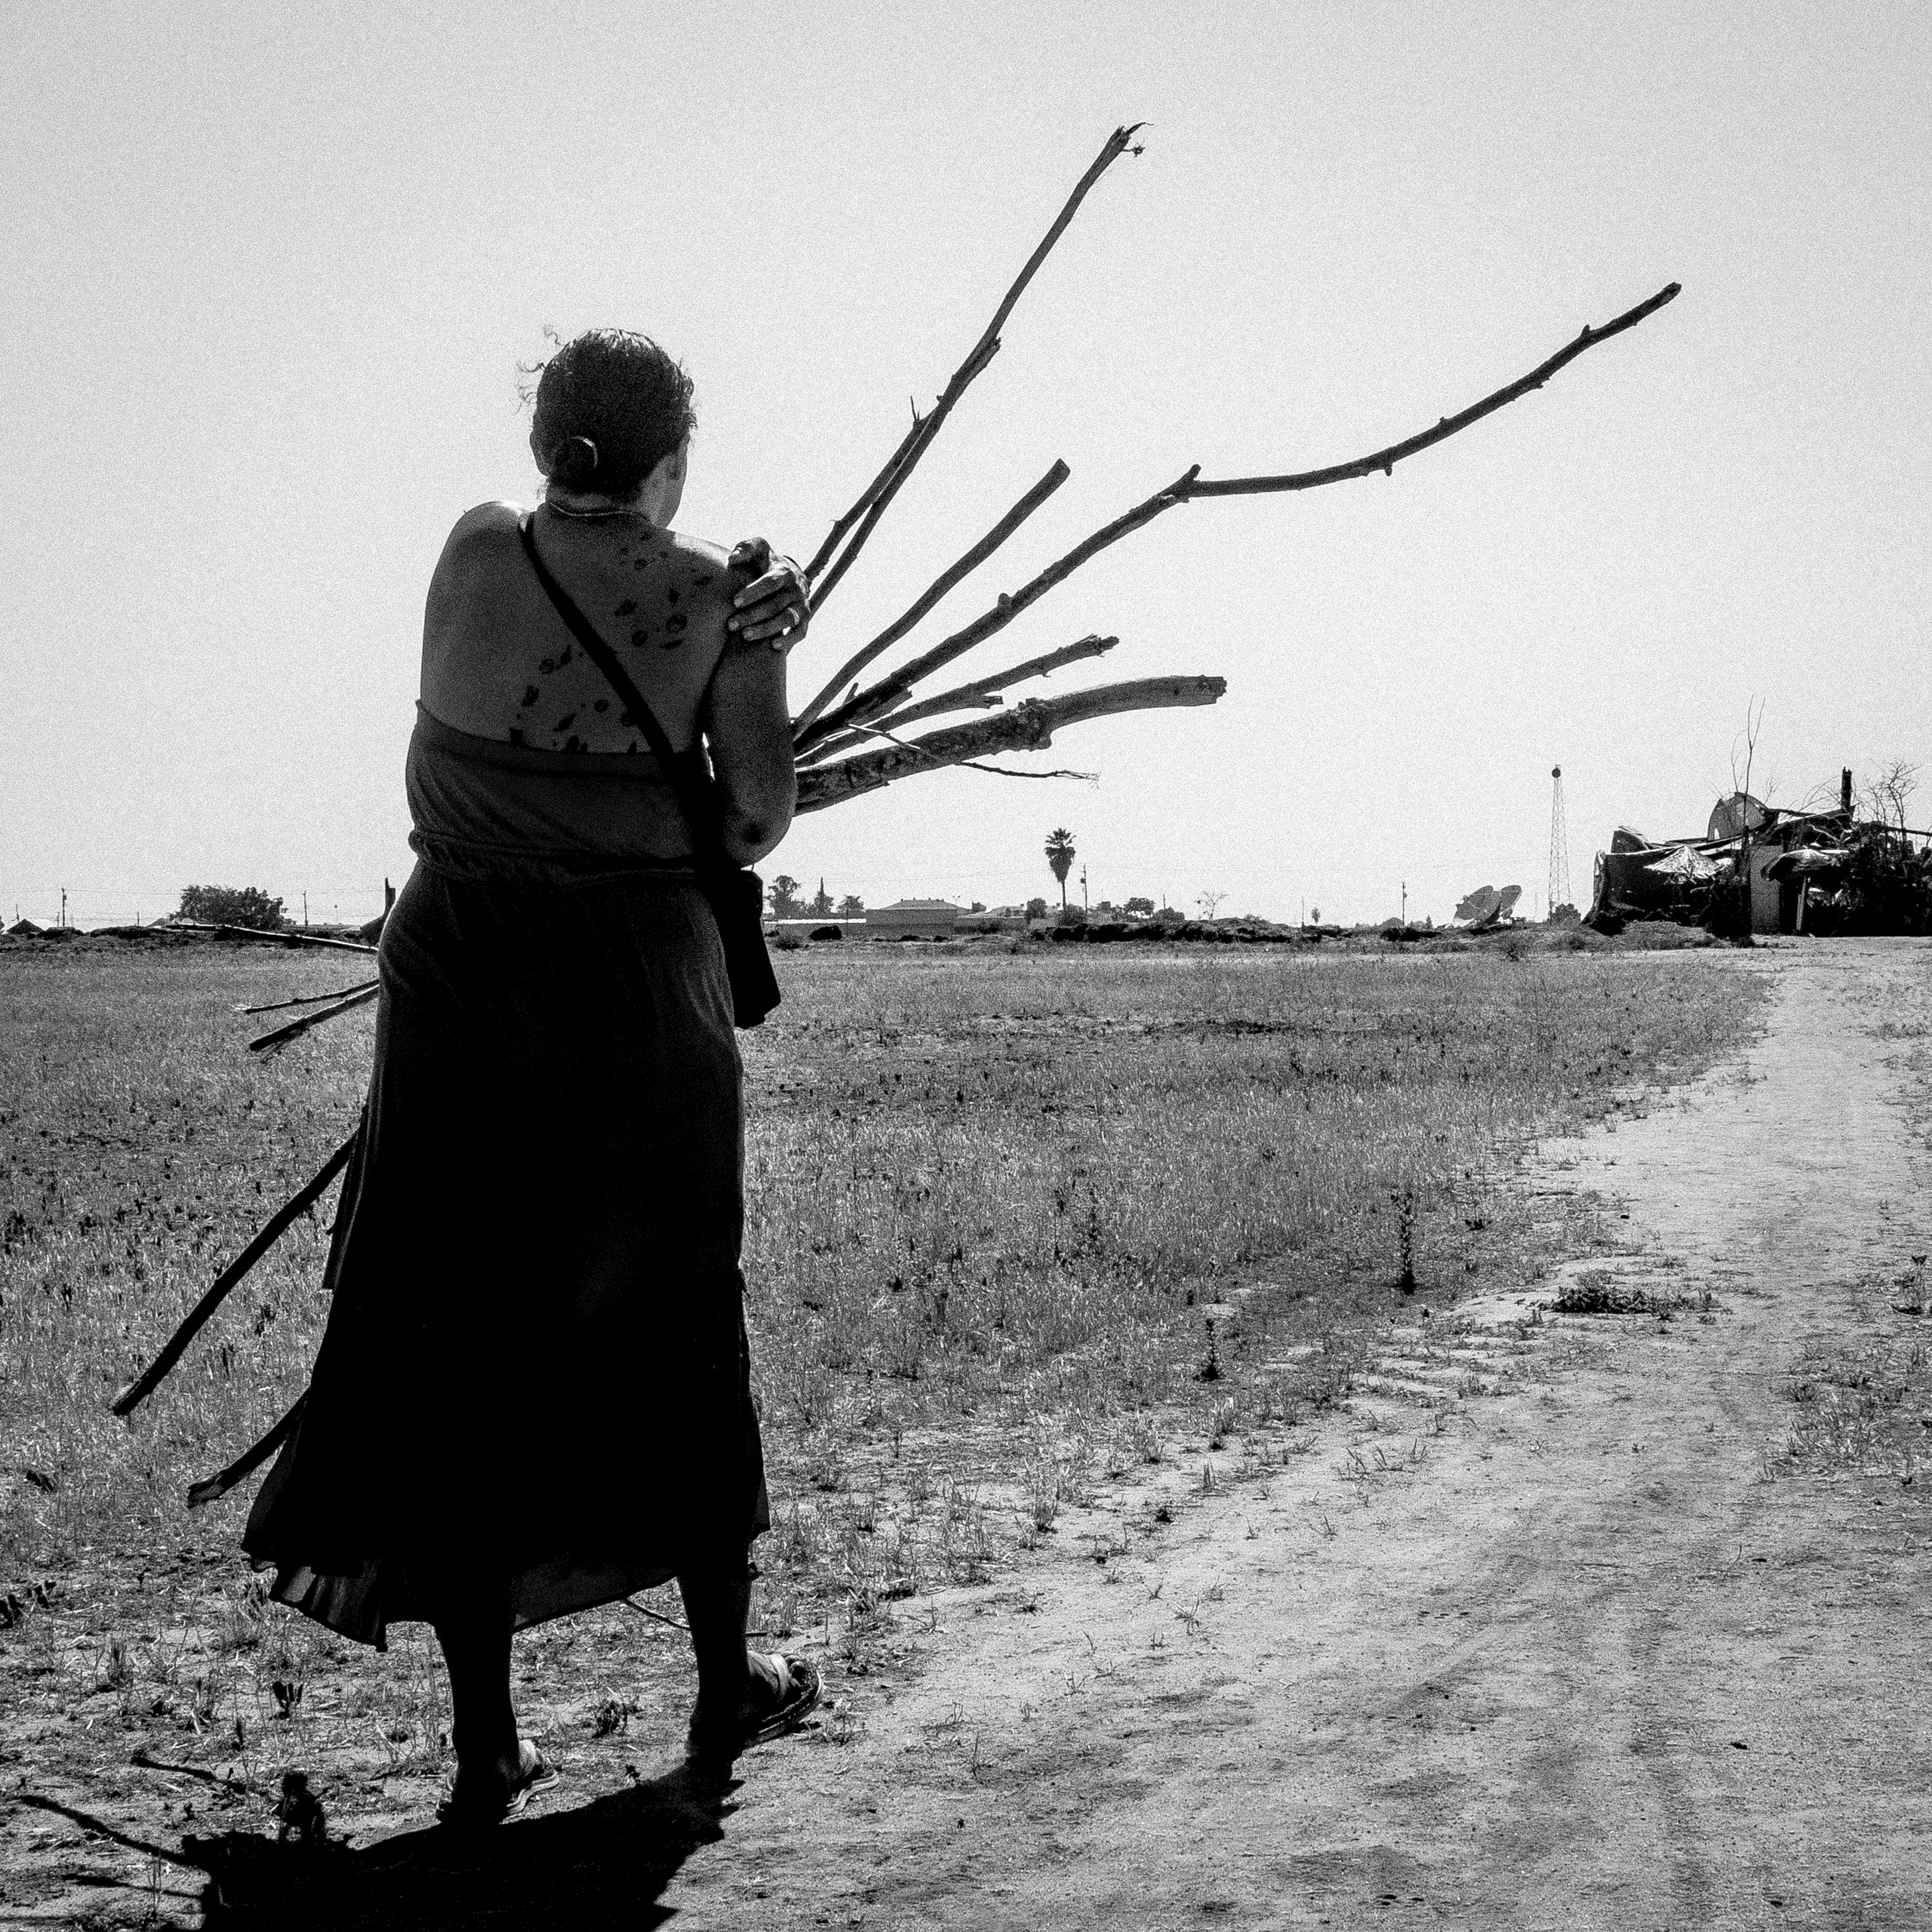 Sinamon carries firewood to the makeshift home she built in an empty lot just outside of Fresno.